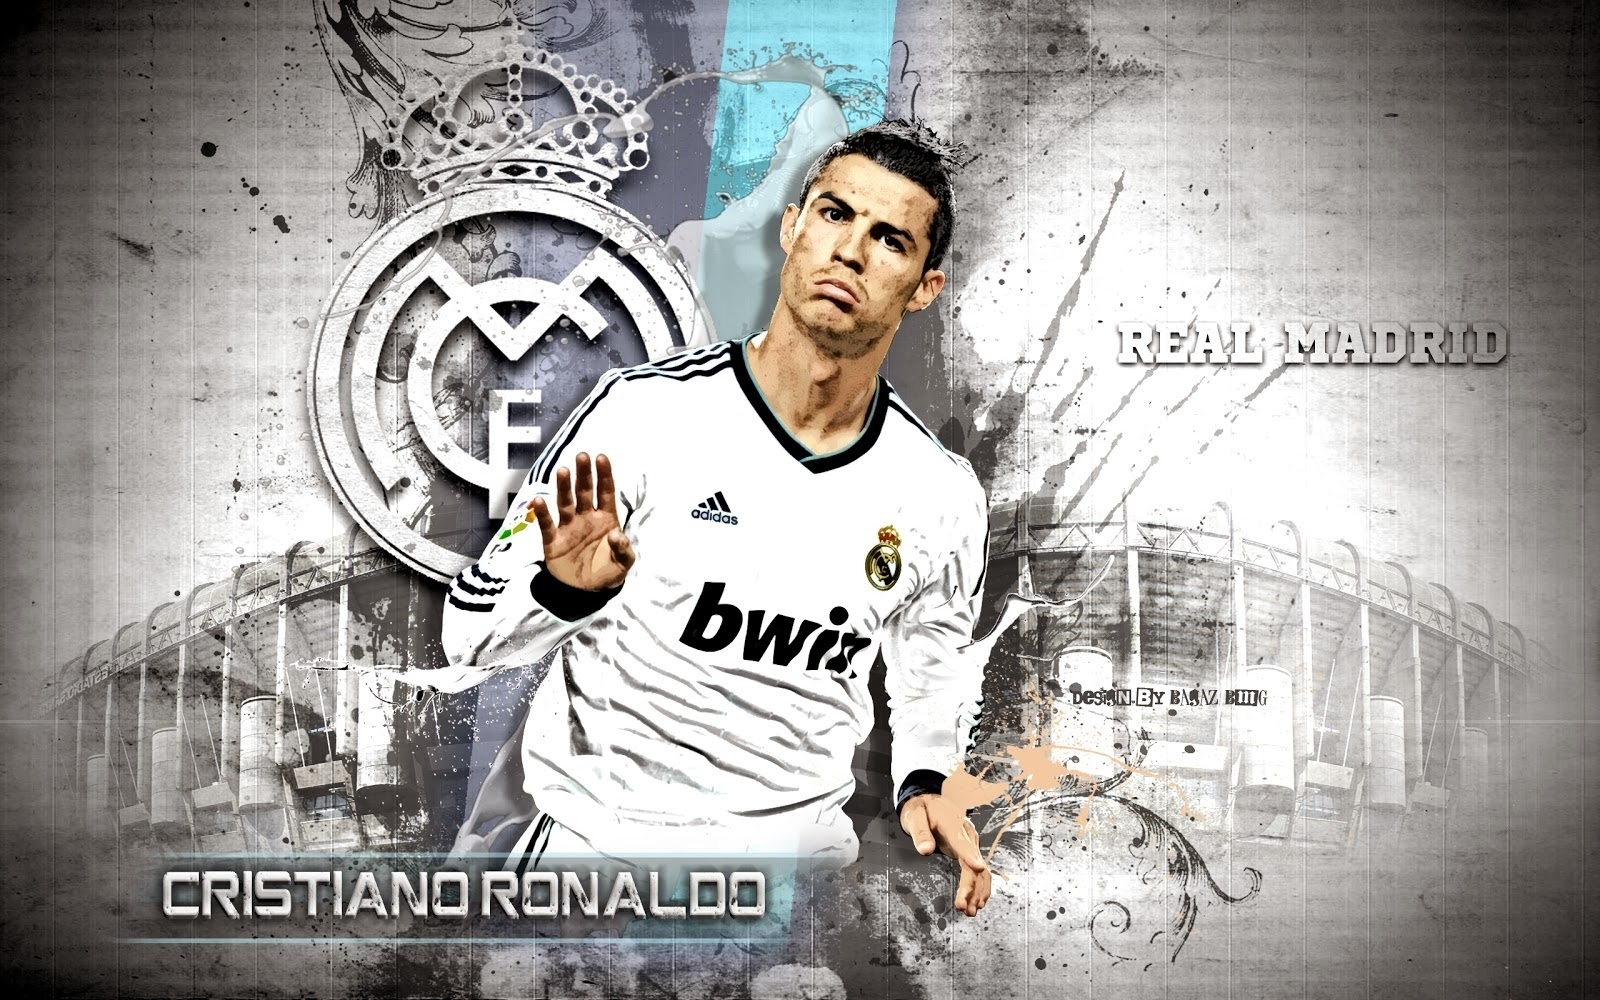 cristiano ronaldo hd wallpaper,images,pics - hd wallpapers blog